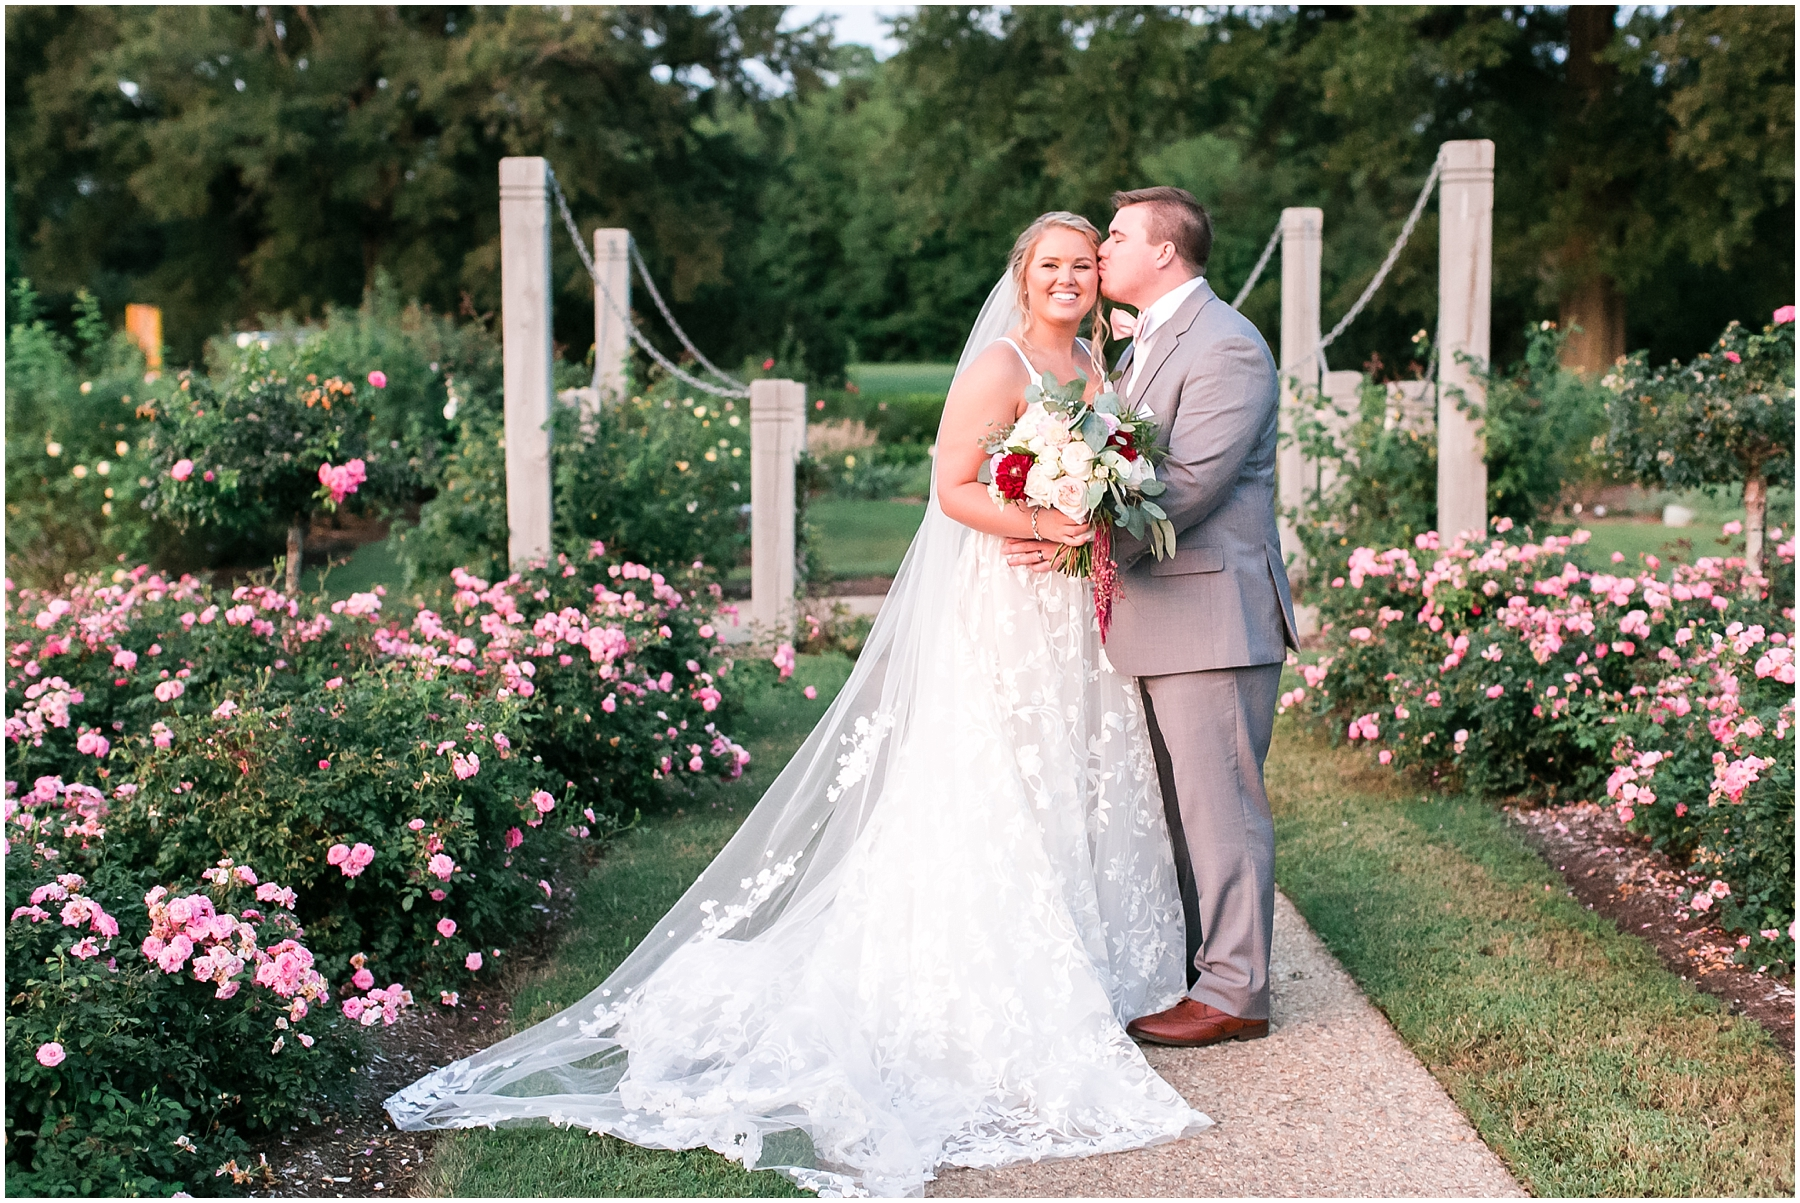 romantic bride and groom portrait at norfolk botanical gardens wedding day, jessica ryan photography, fluttering flowers, jessica ryan photography, studio i do, blush by hayley paige wedding dress, blushtones, flawless onsite,